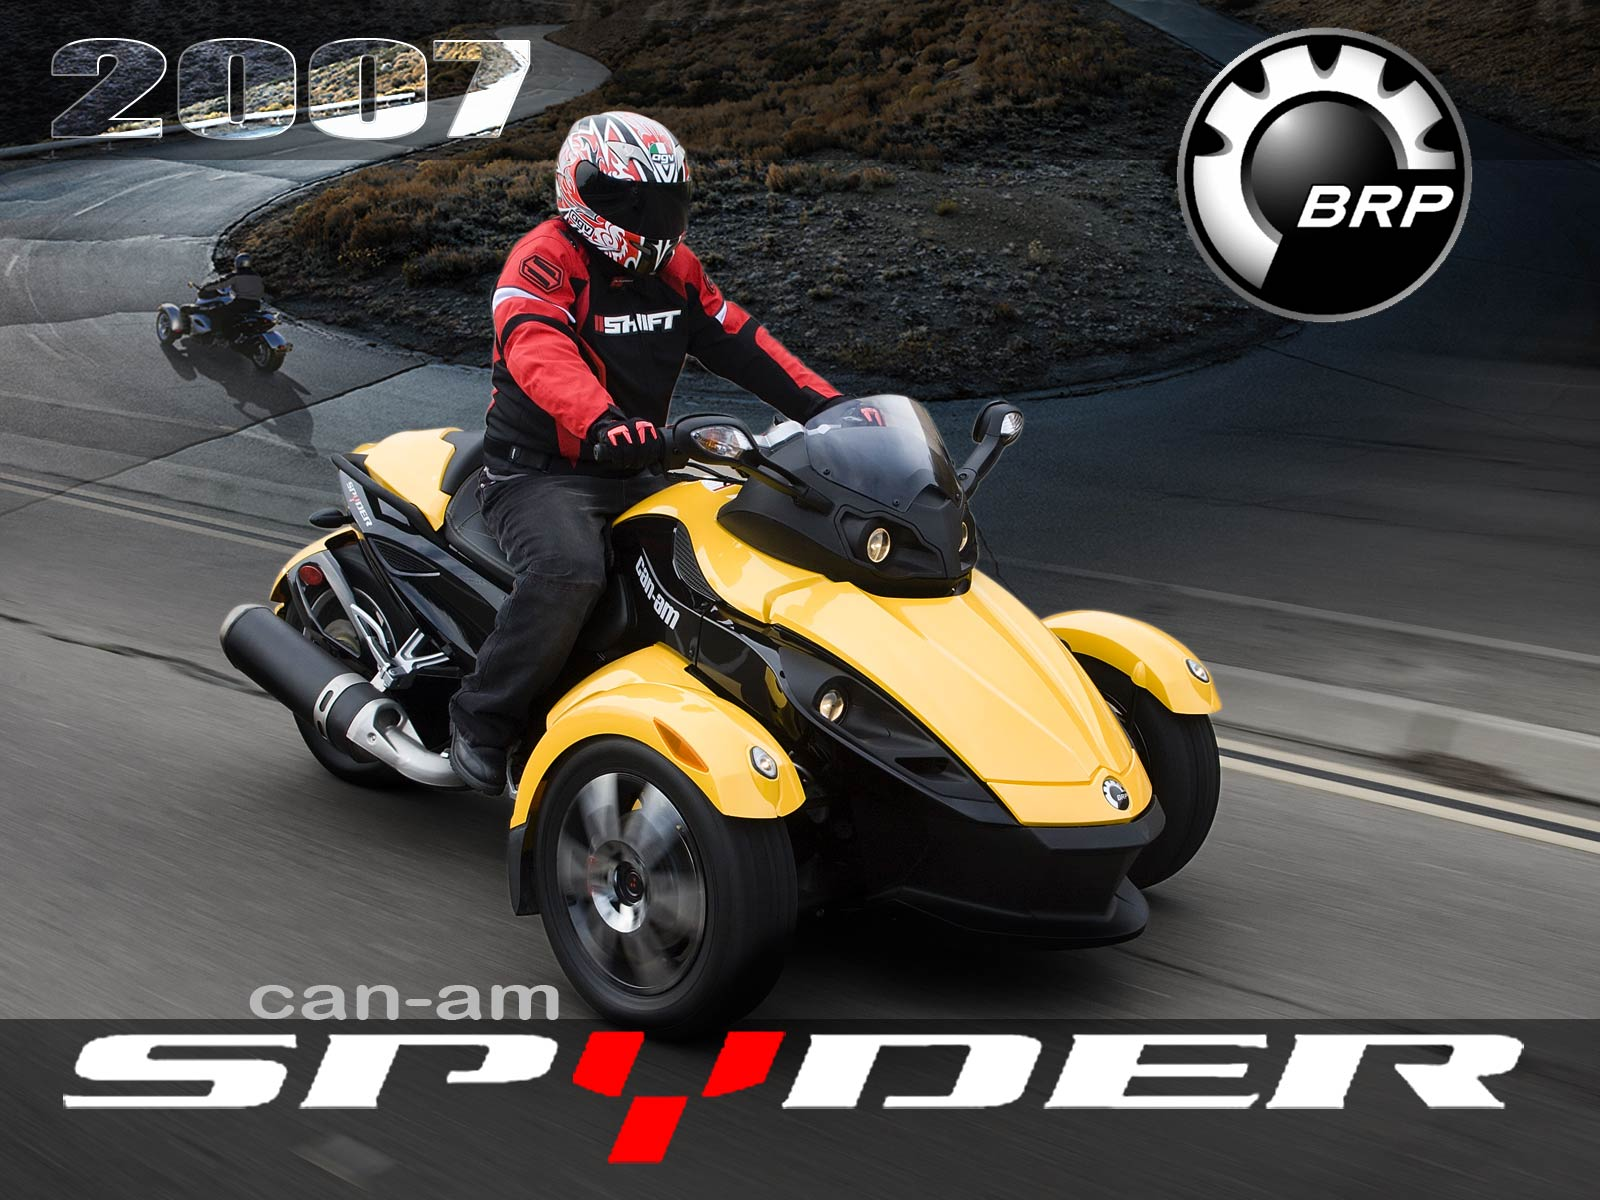 Can-am spyder photo - 2